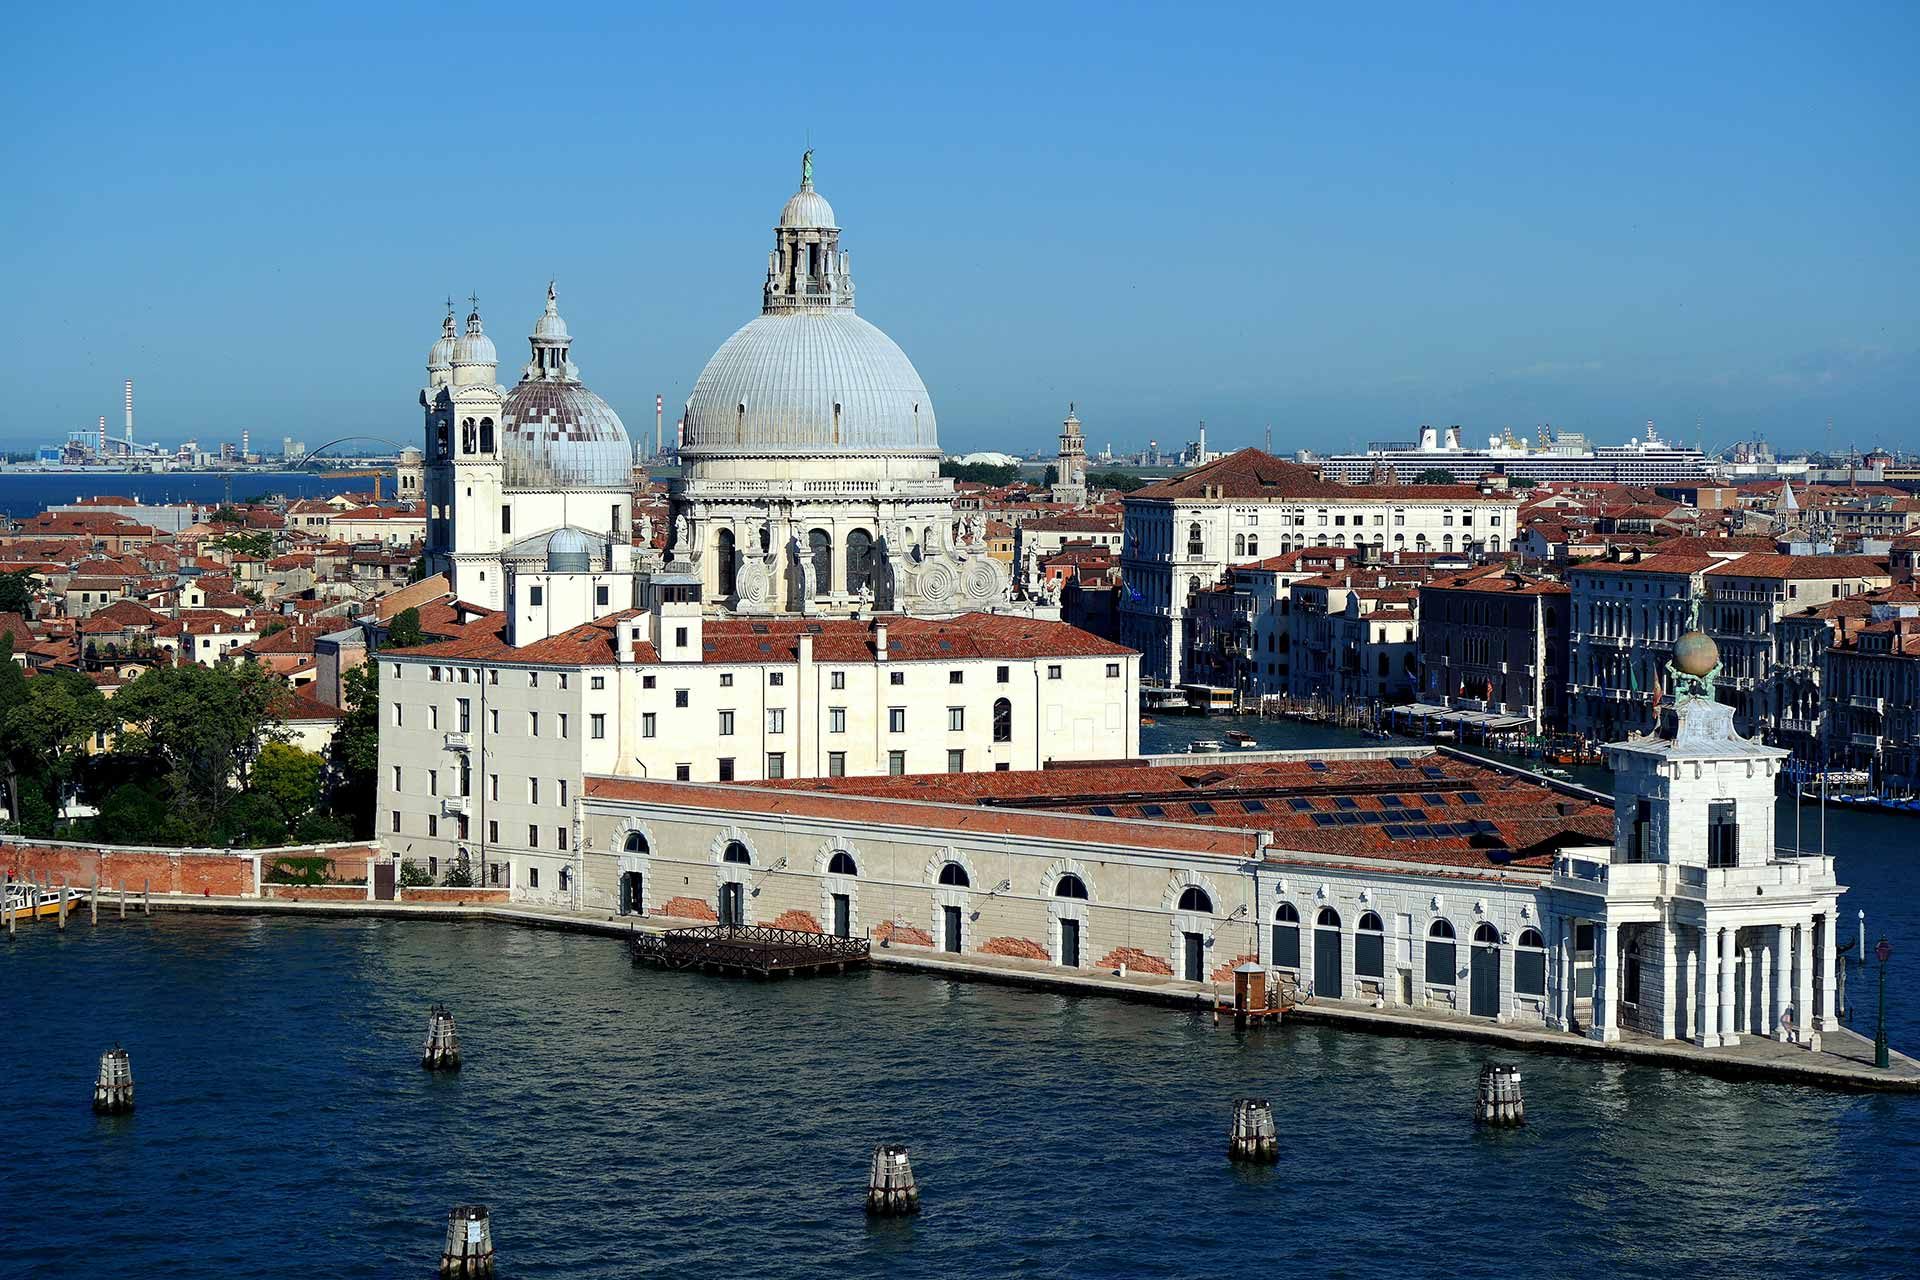 Feast of the Madonna della Salute - Venice Dream House